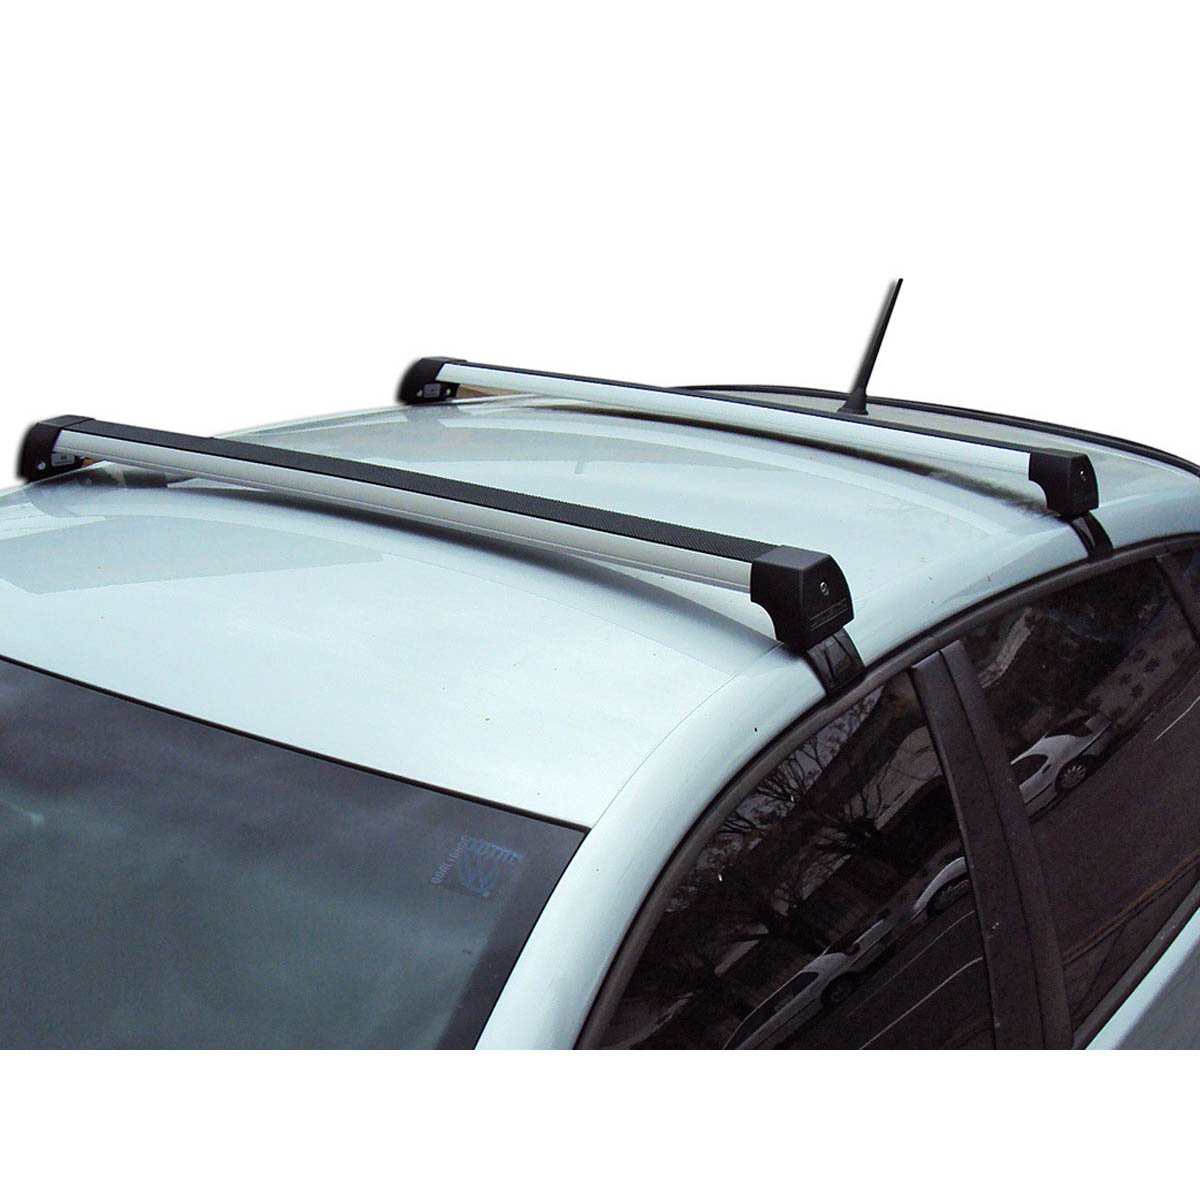 Rack de teto Corolla 2009 a 2014 Long Life Sports anodizado